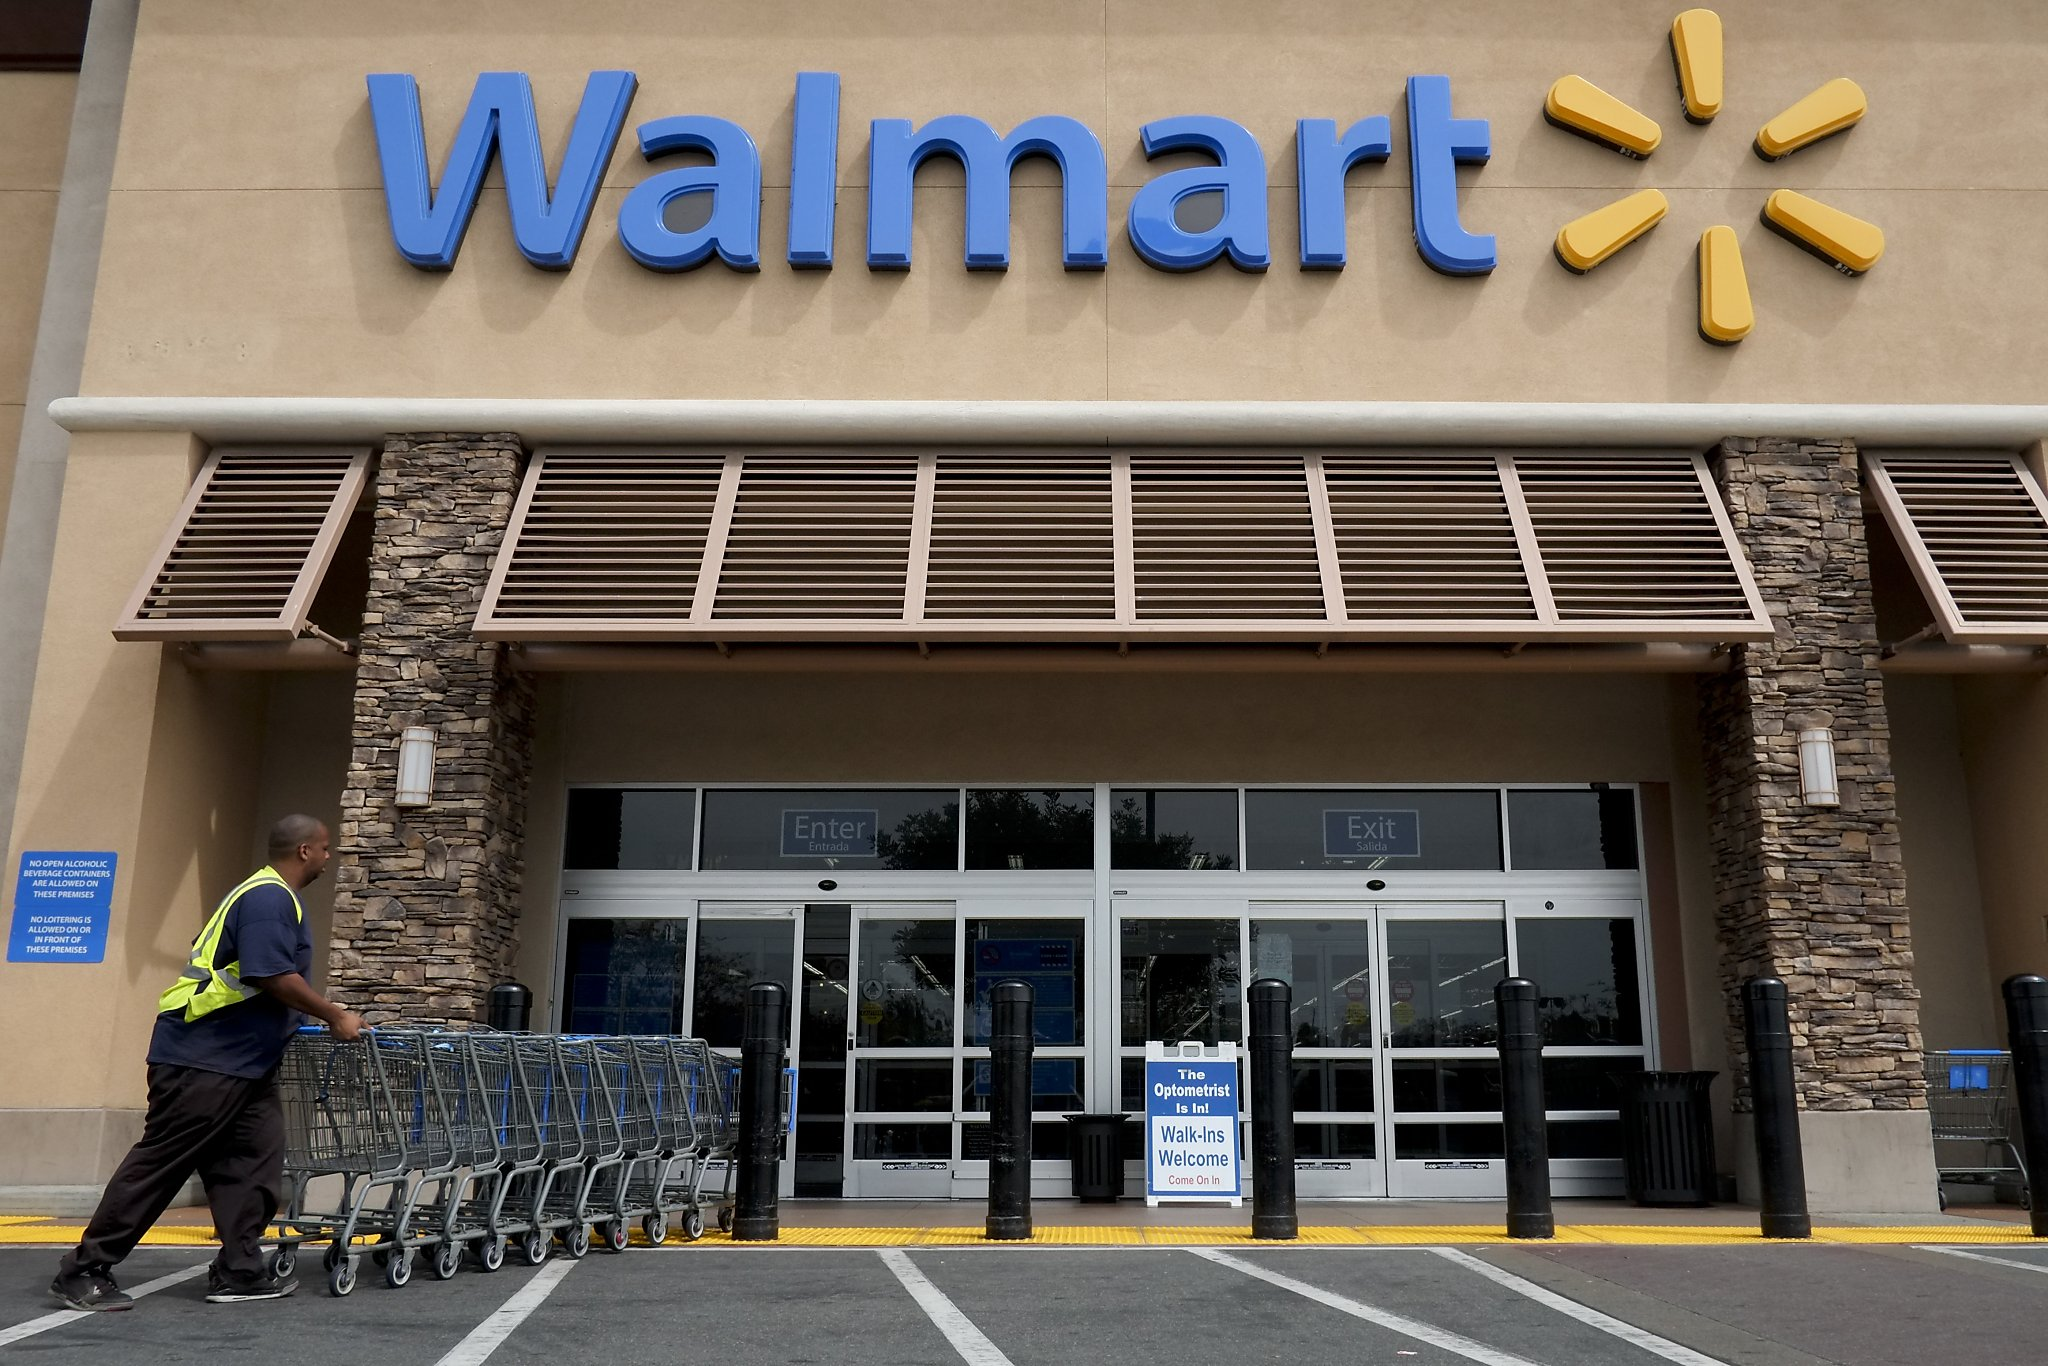 walmart settles disability rights suit over payment machines sfgate